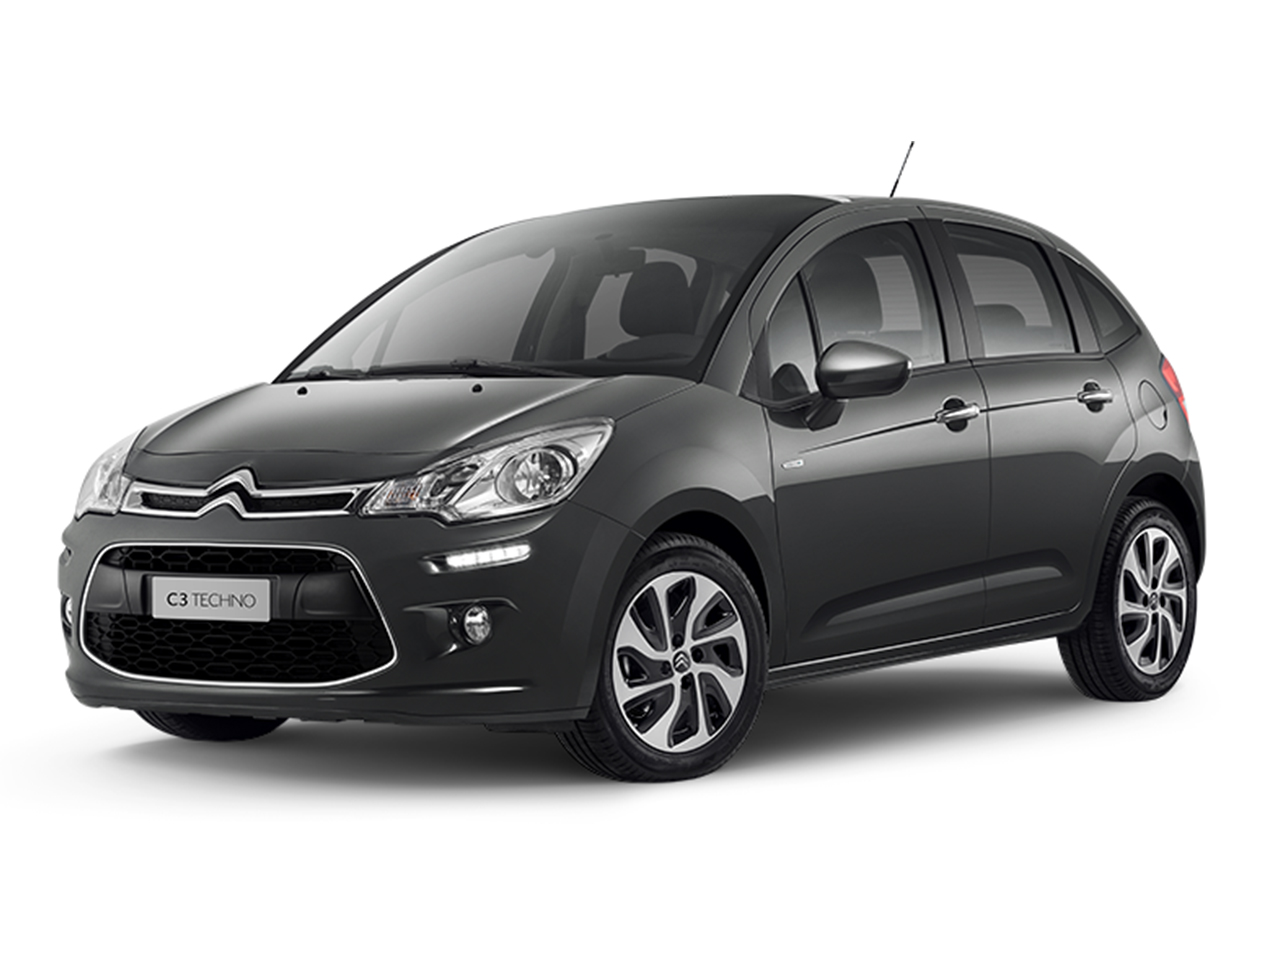 2018 Citroen C3 Prices In Uae Gulf Specs Amp Reviews For